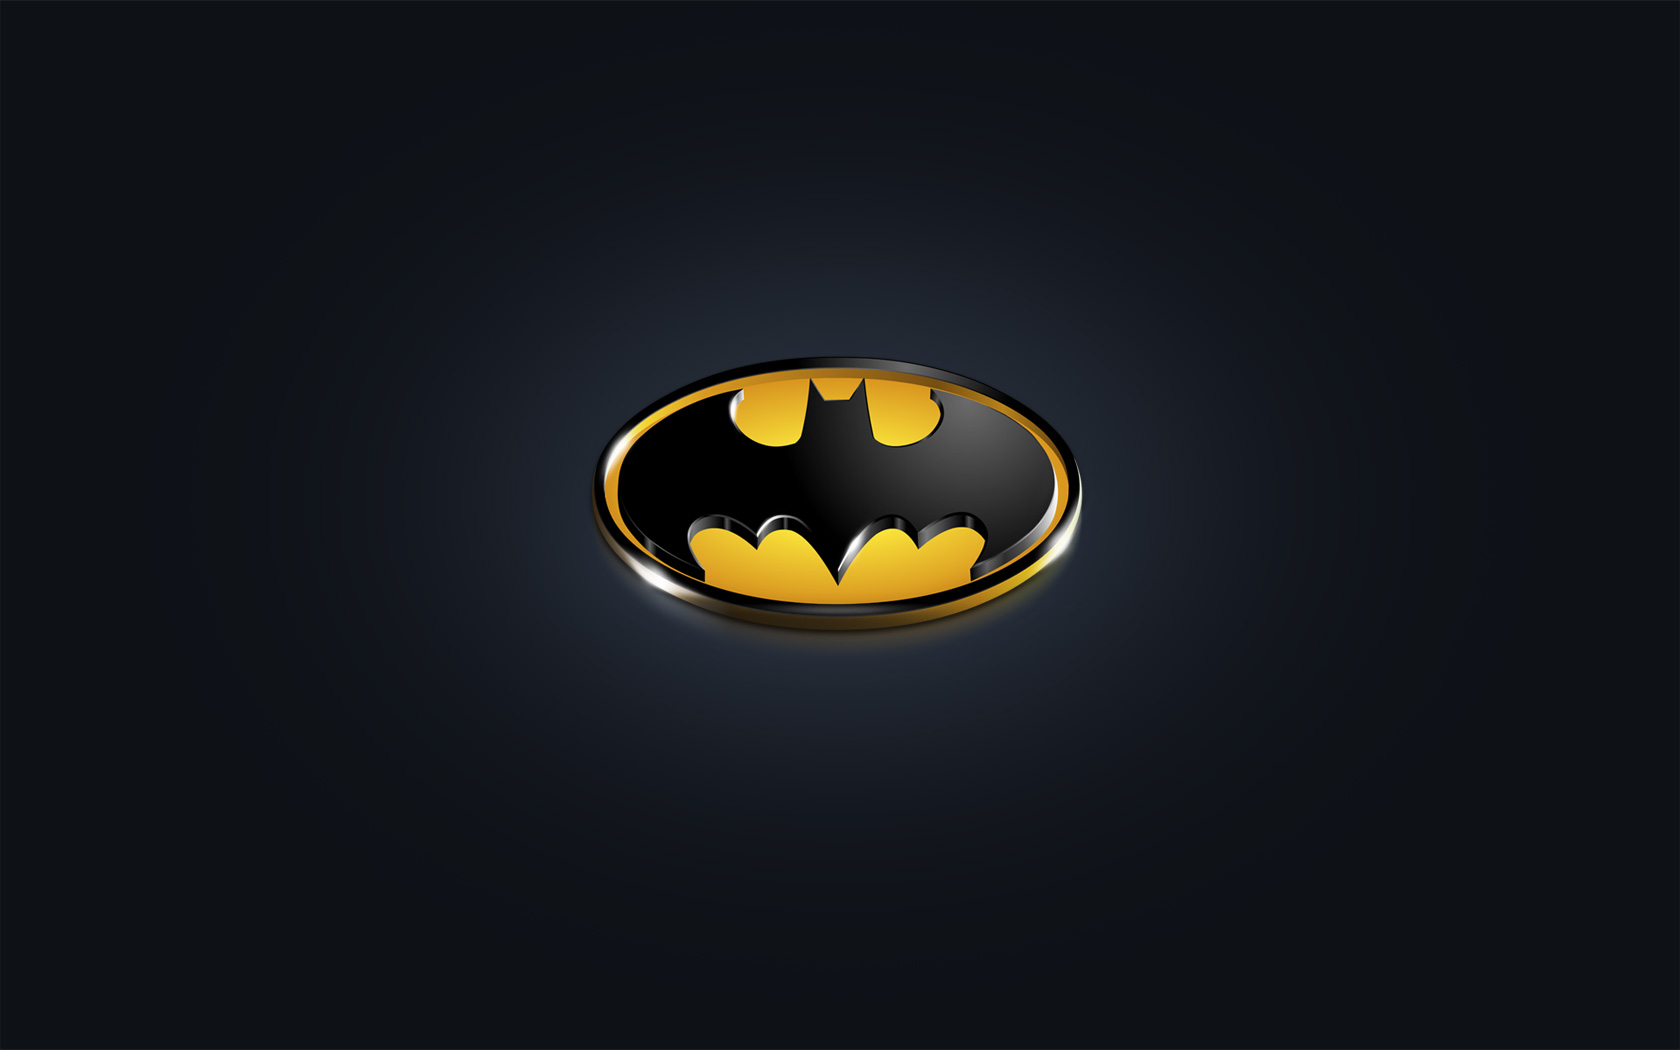 Batman Logo HD 41410 1680x1050 px ~ HDWallSource.com